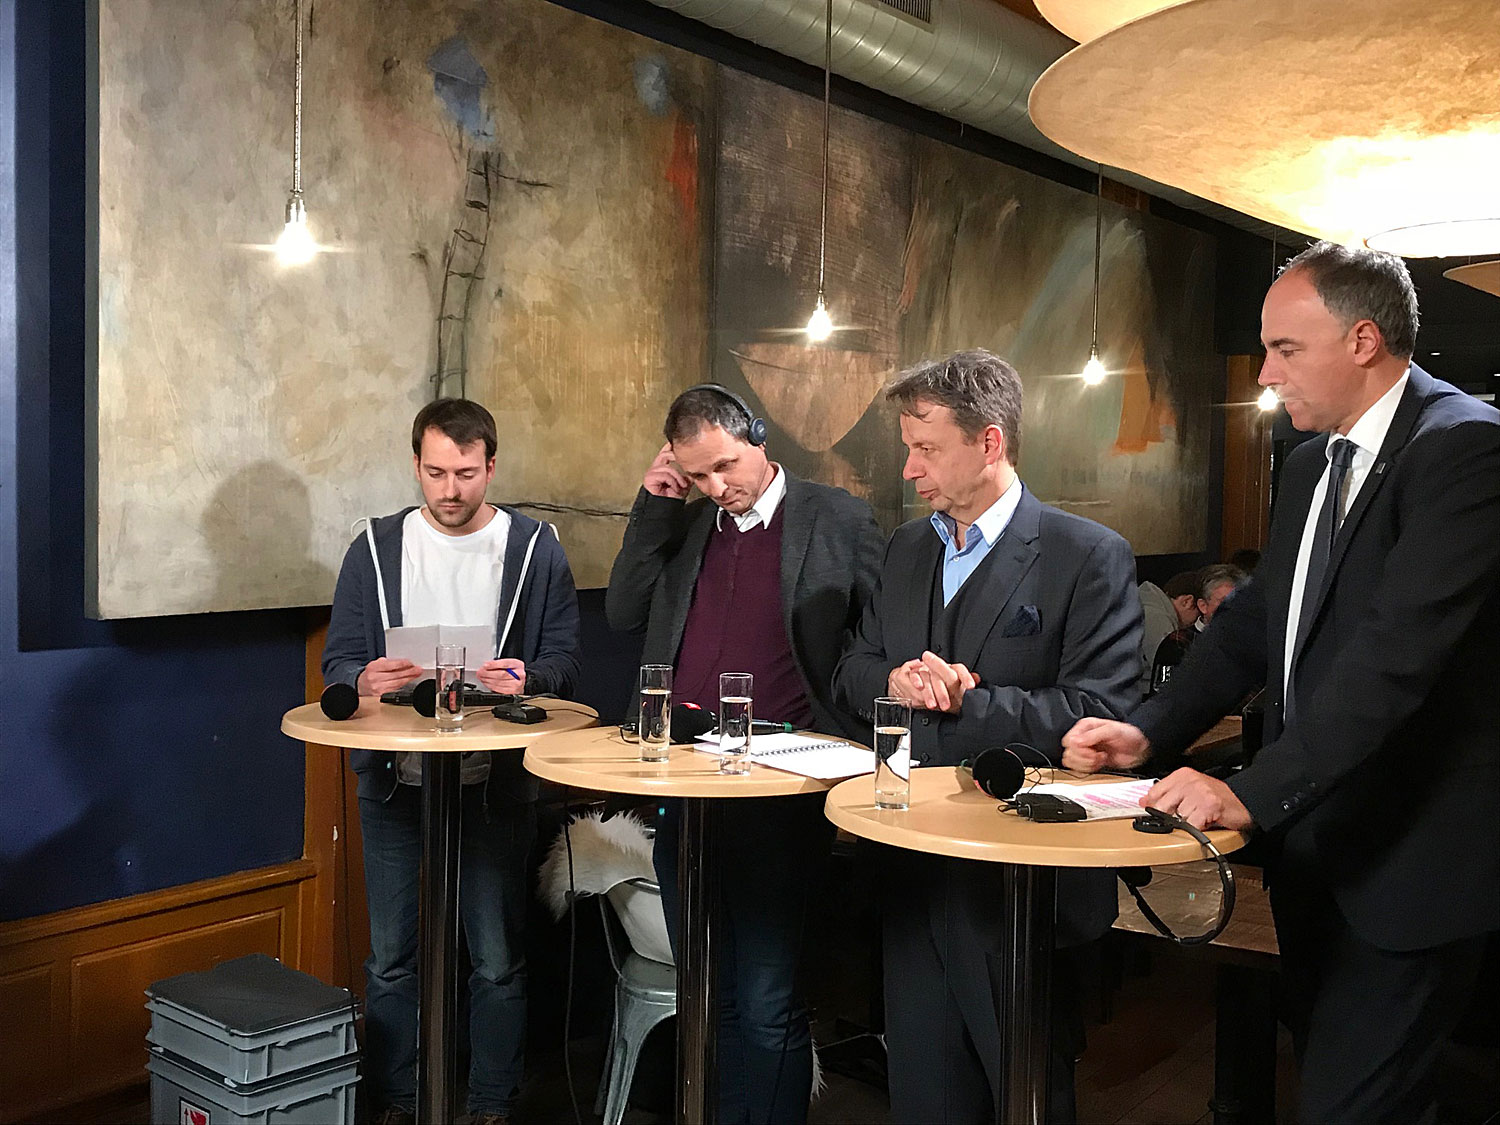 Débat de Forum en direct de la Brasserie du Grand-Pont, à Sion (VS).